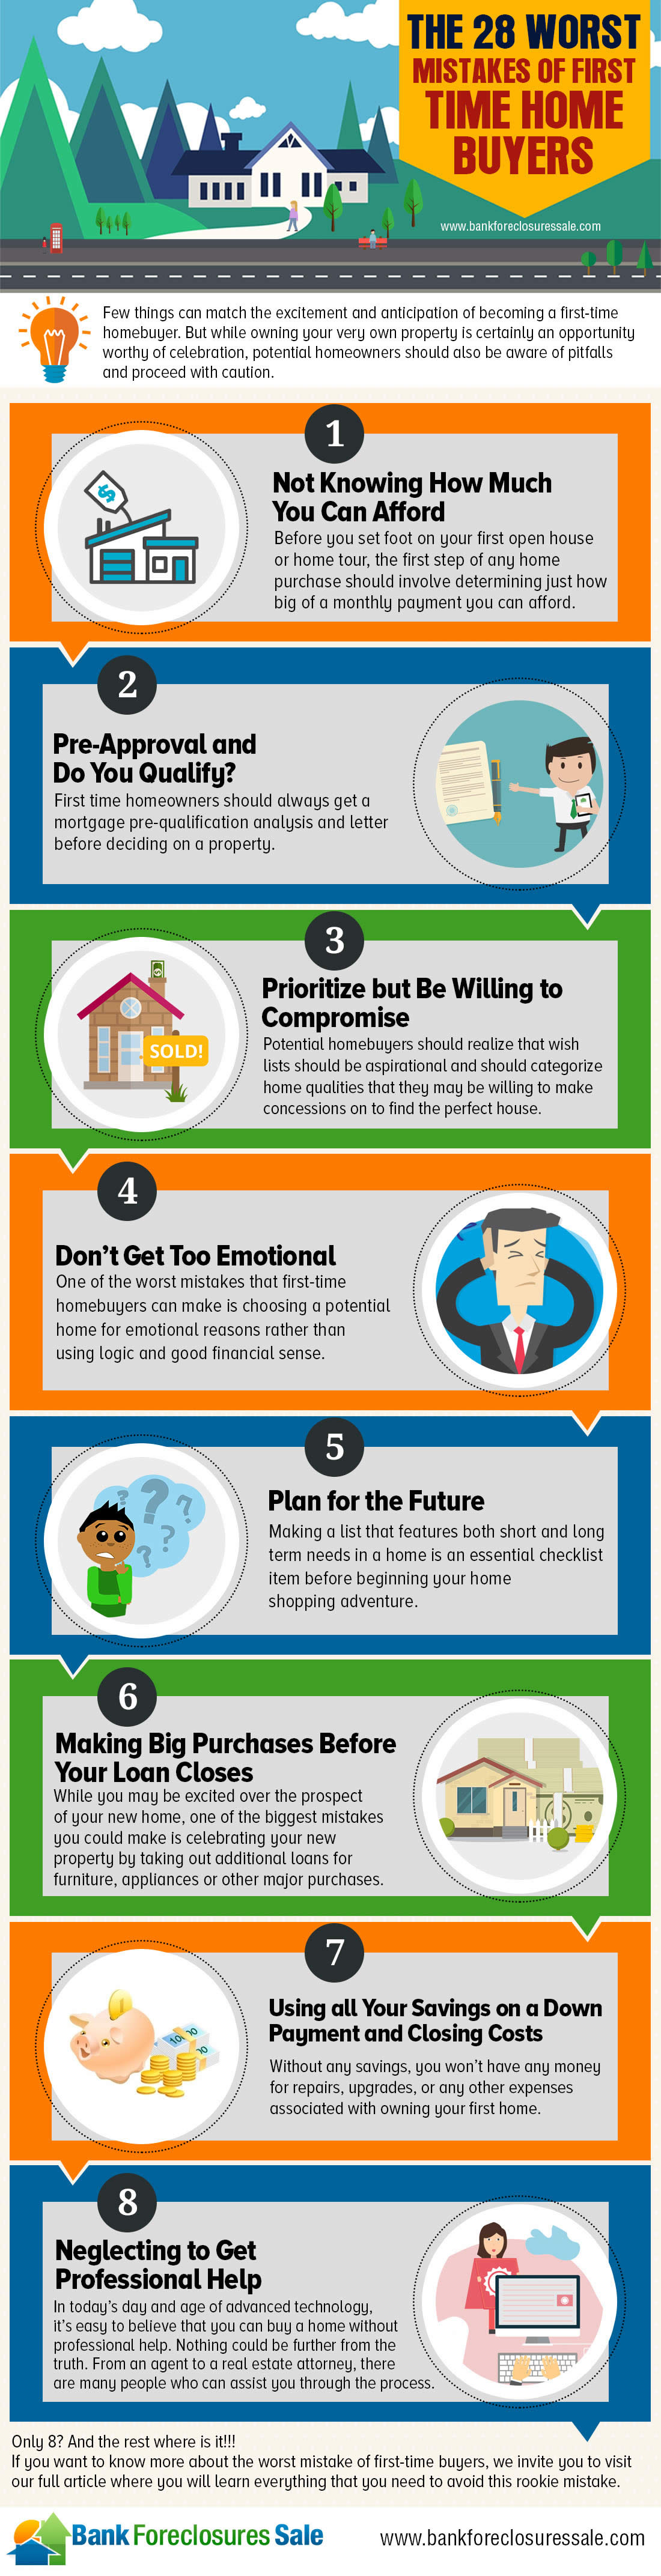 The 28 Worst Mistakes of First-Time Home Buyers